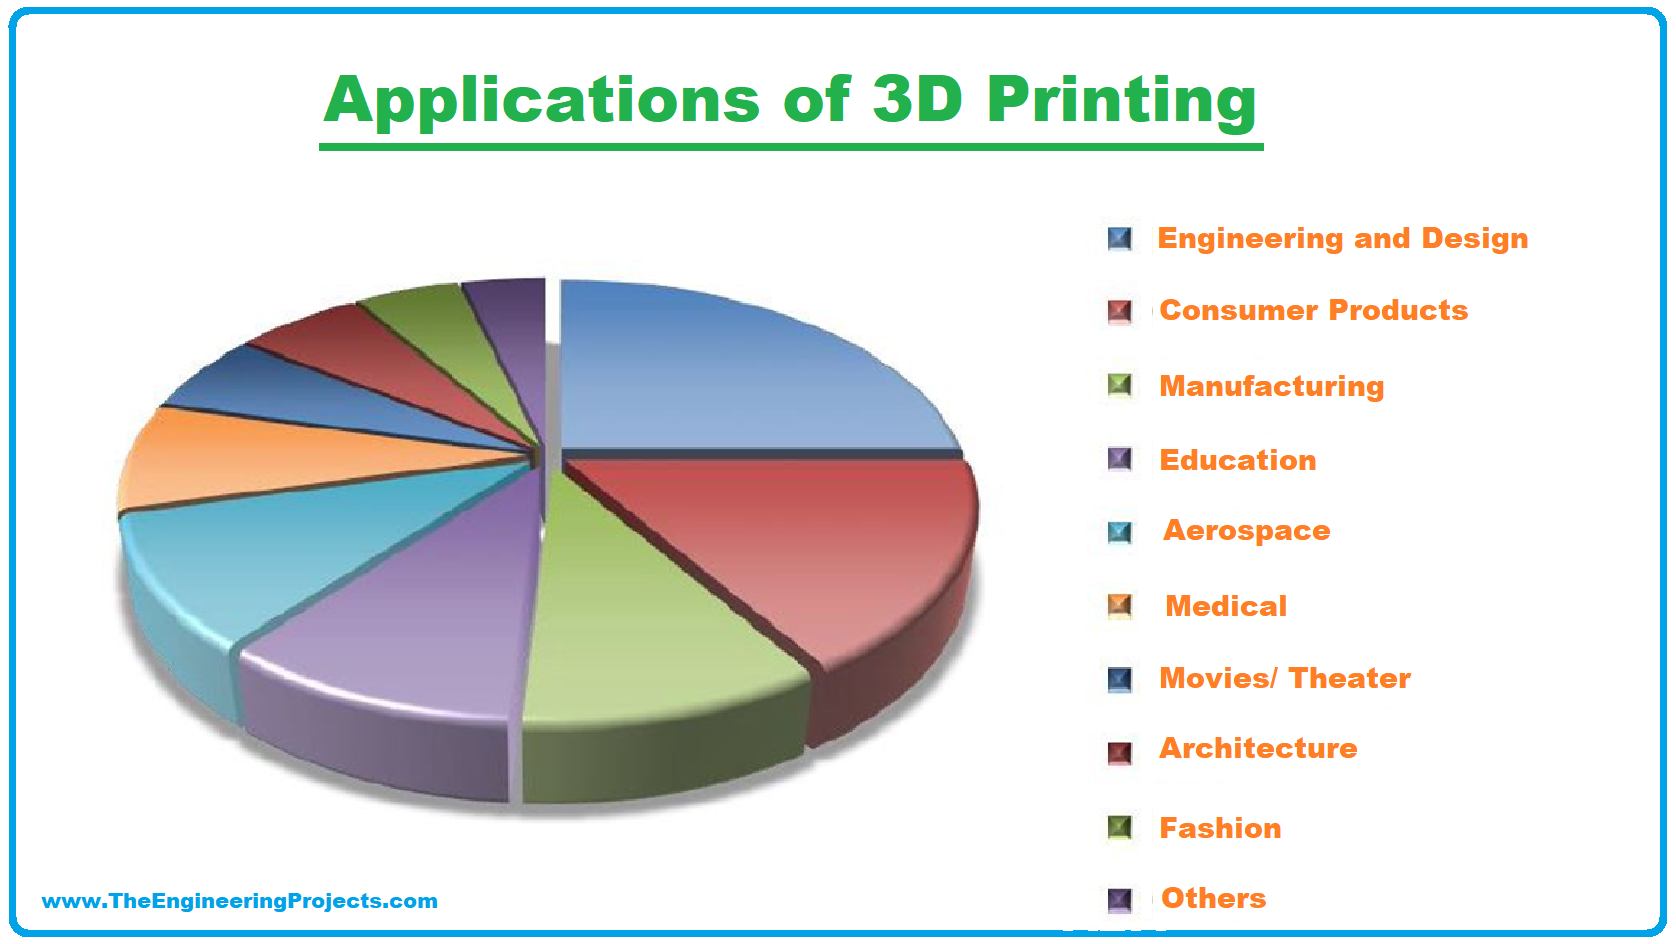 What is 3D Printing, Definition of 3D printing, Technology Used In 3D Printing, Process of 3D printing, Applications of 3D Printing, 3d printing applications, 3d printing, 3d printer applications, applications of 3d printer